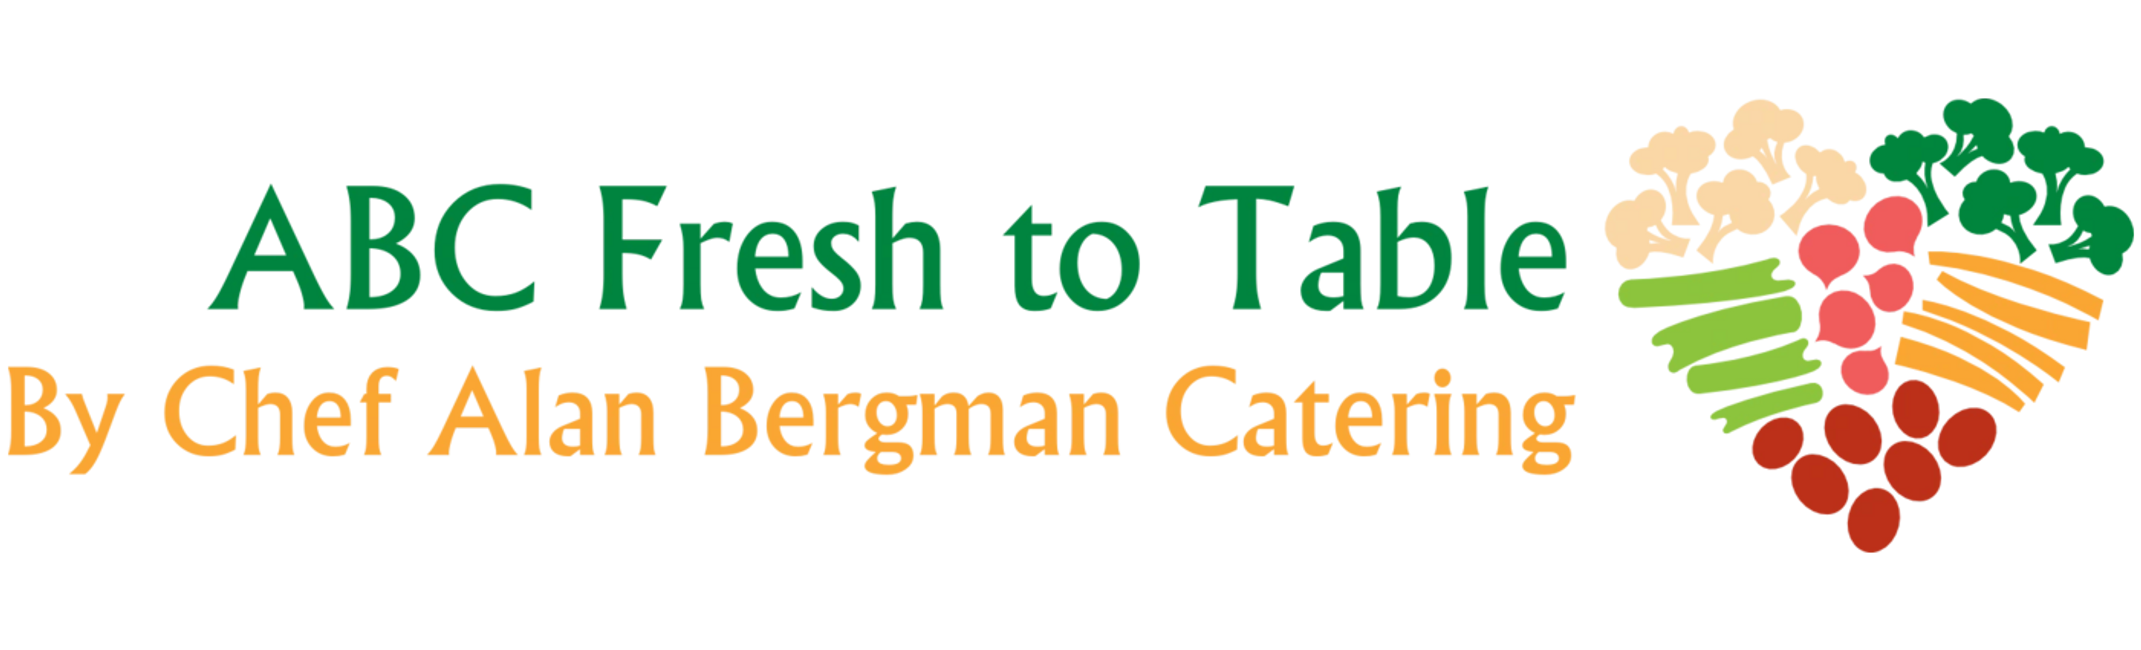 Meal plan delivery South Florida ABC Fresh to Table